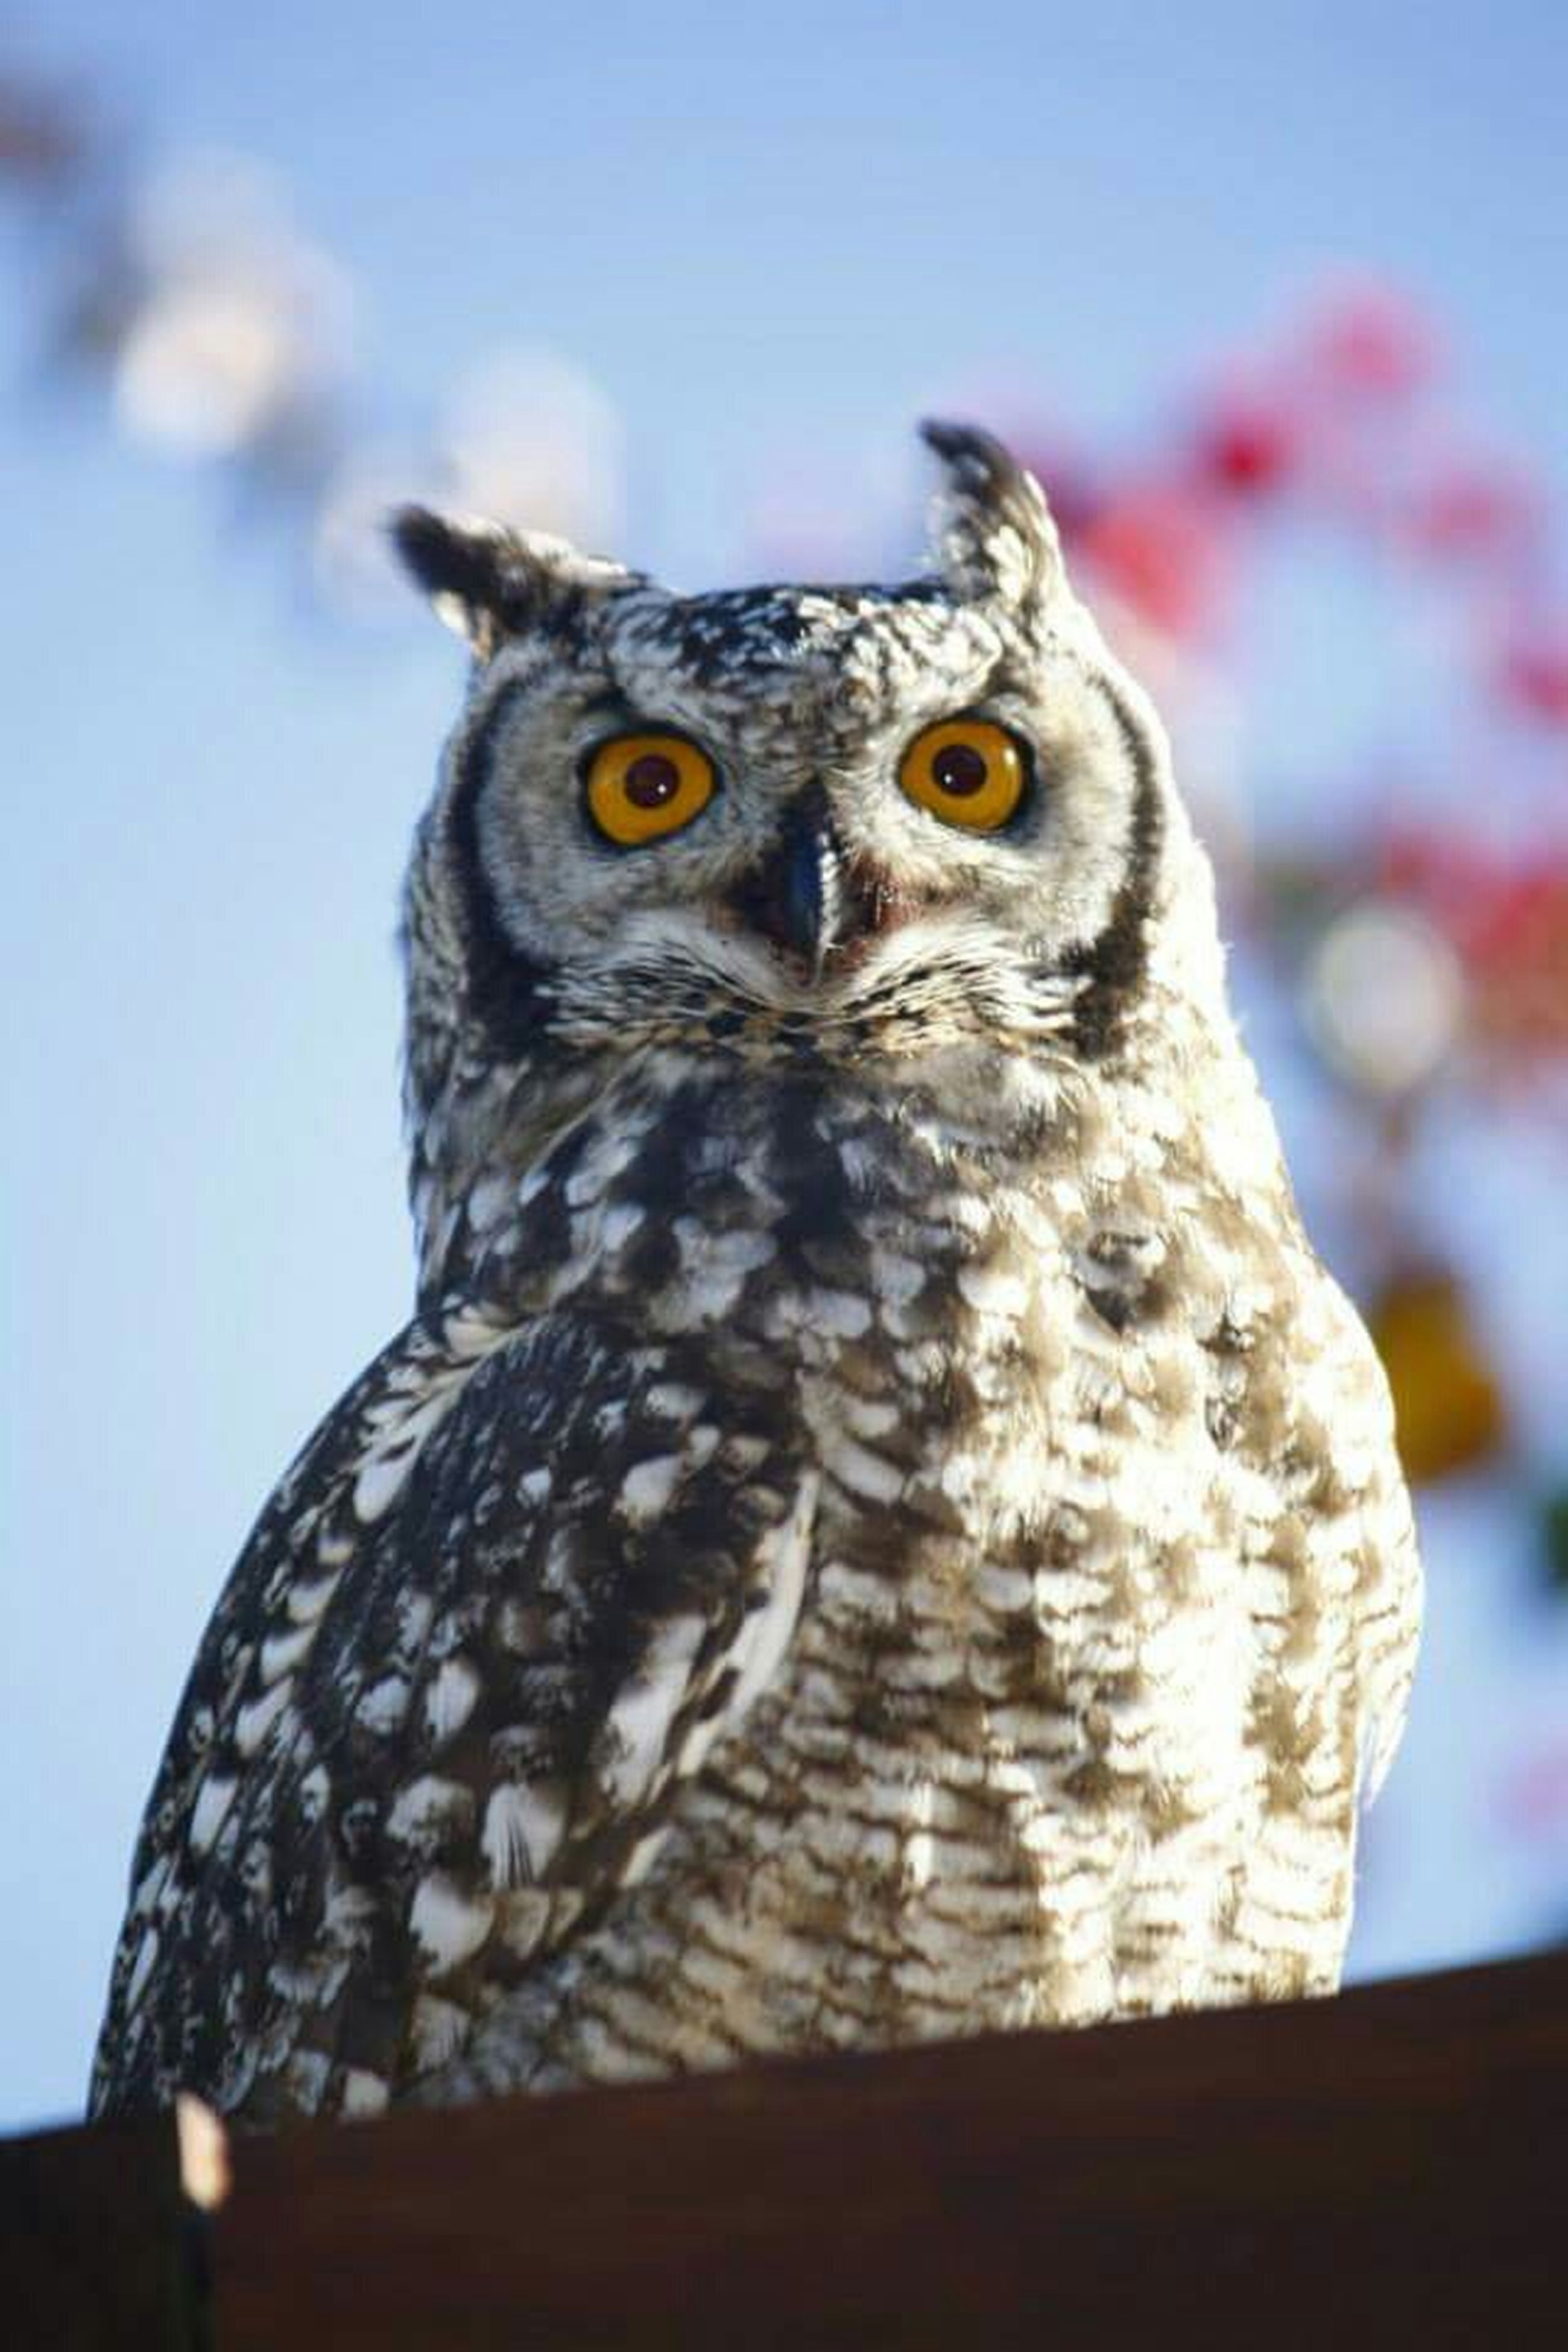 animal themes, one animal, bird, animals in the wild, wildlife, focus on foreground, bird of prey, close-up, perching, owl, animal head, beak, looking away, low angle view, portrait, nature, outdoors, day, no people